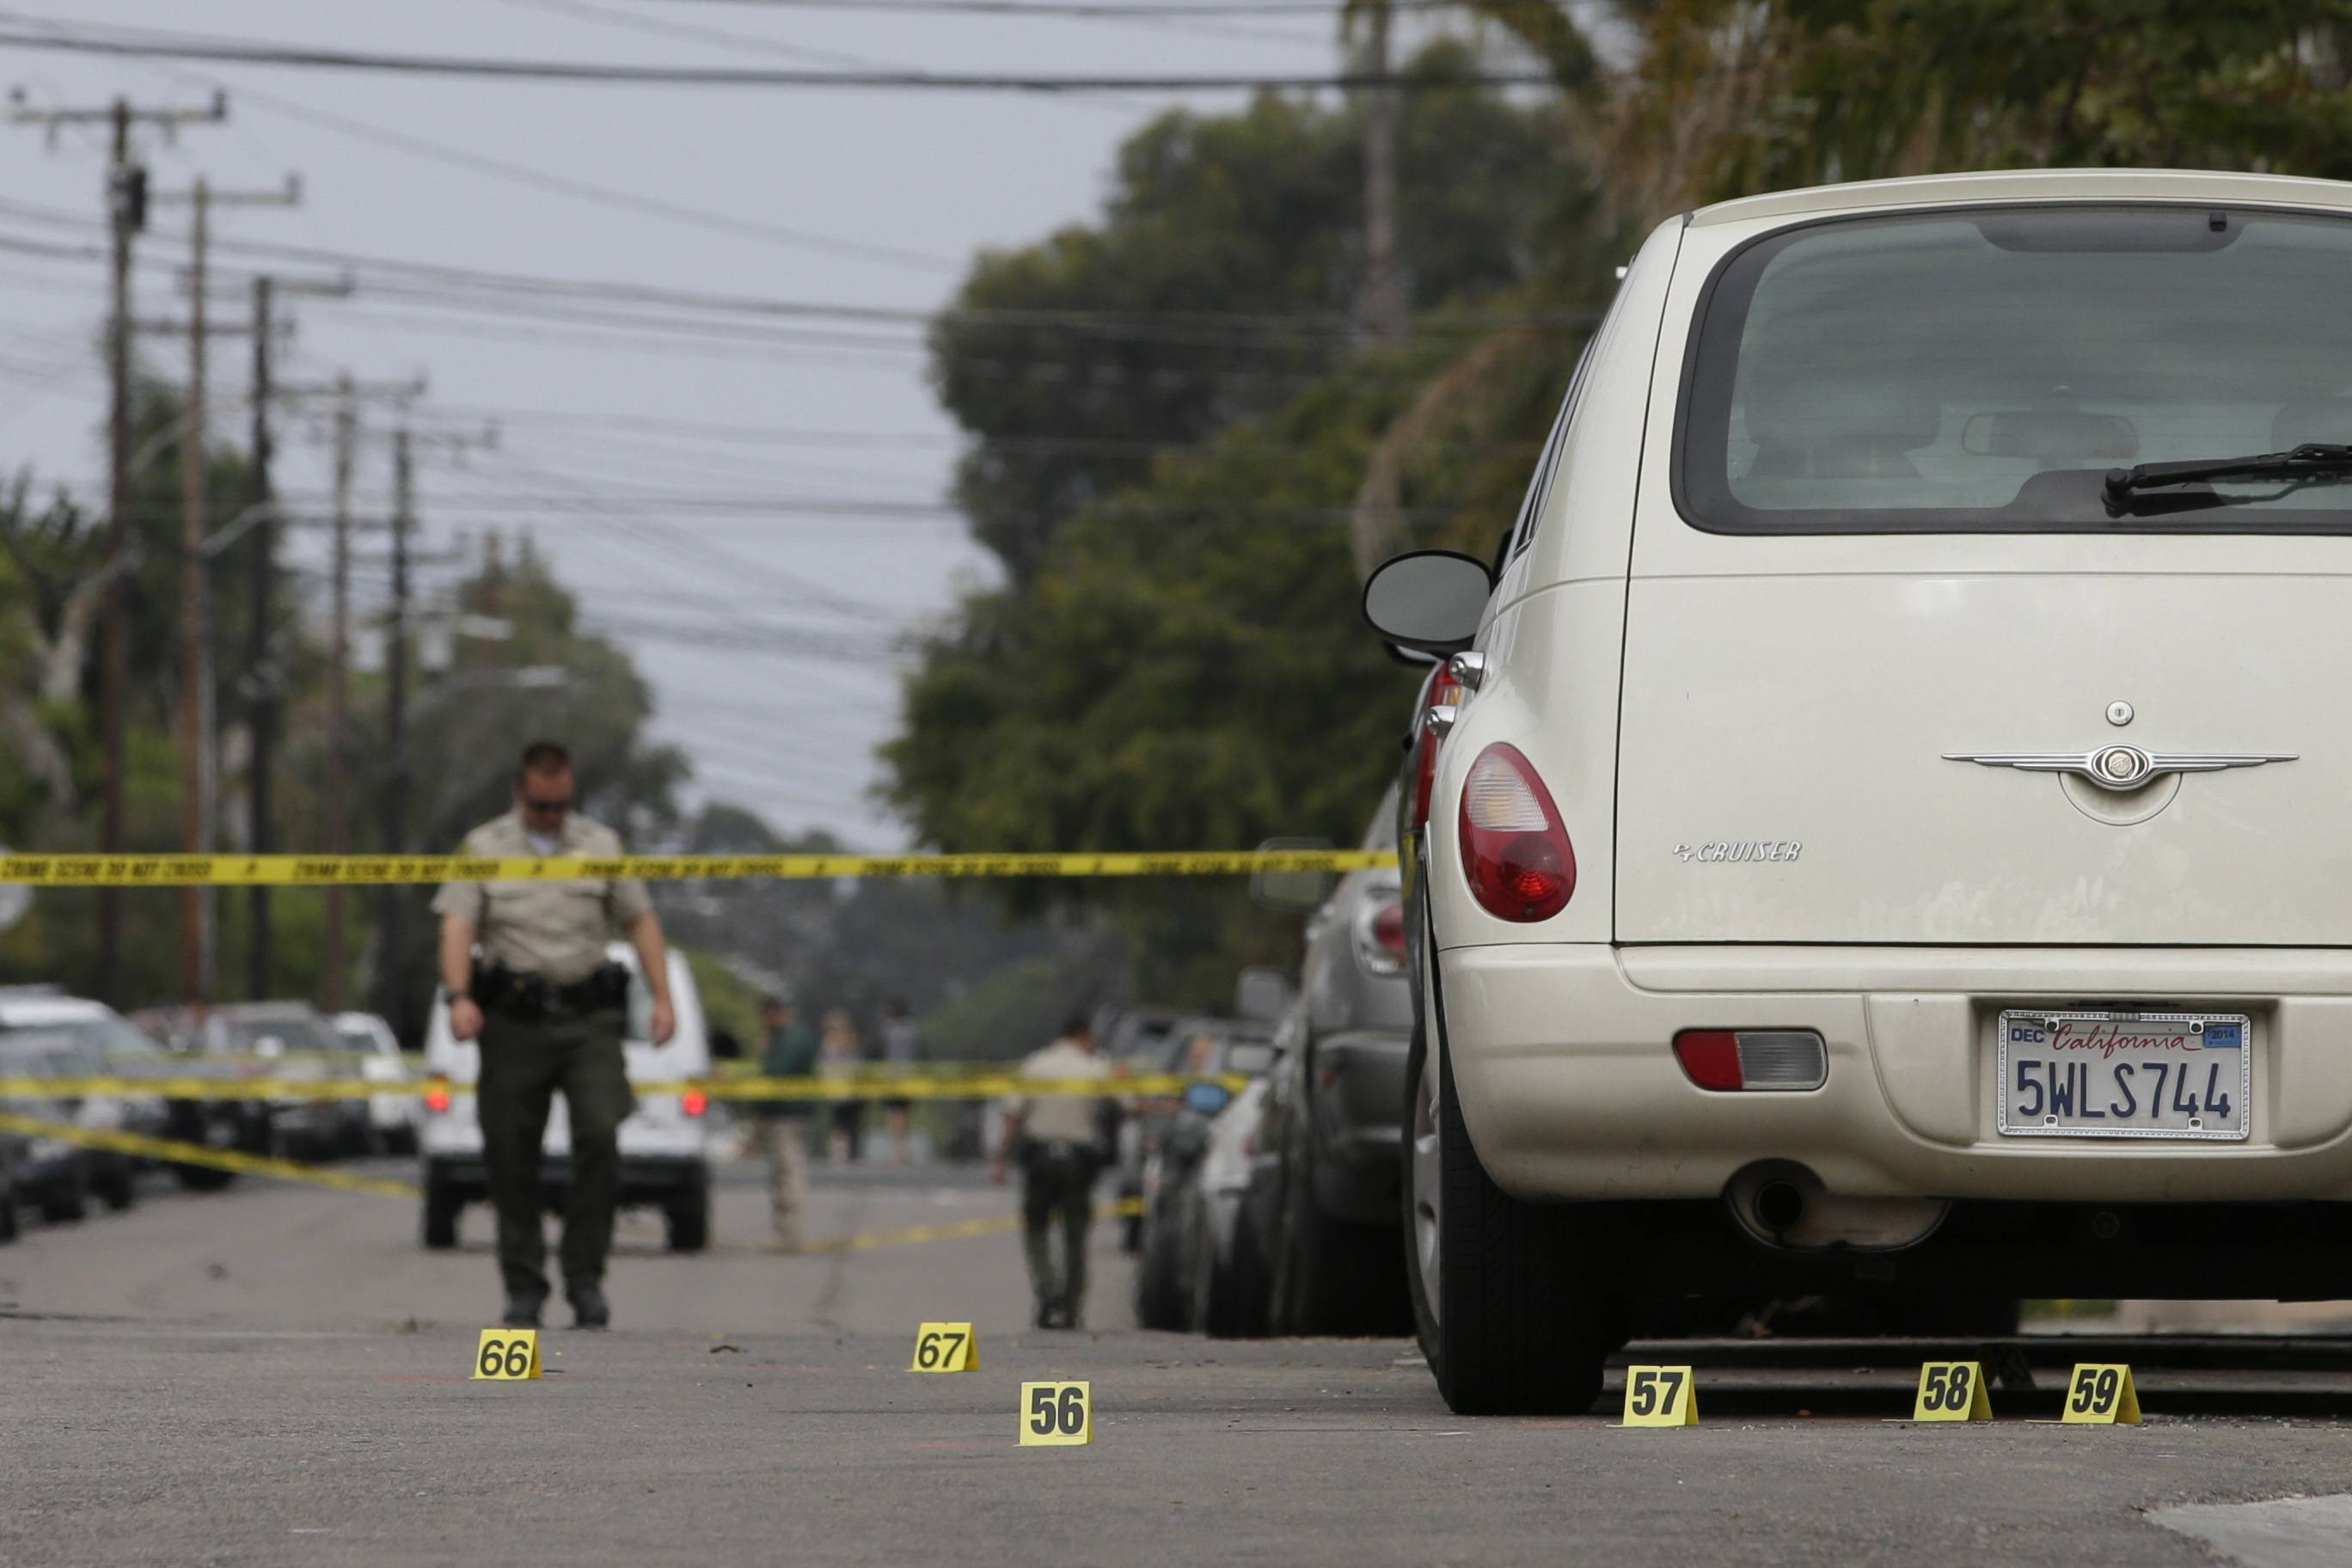 Markers are placed at the scene of a shooting on Saturday, May 24, 2014, in Isla Vista, Calif. A drive-by shooter went on a rampage near a Santa Barbara university campus that left seven people dead, including the attacker, and others wounded, authorities said Saturday.